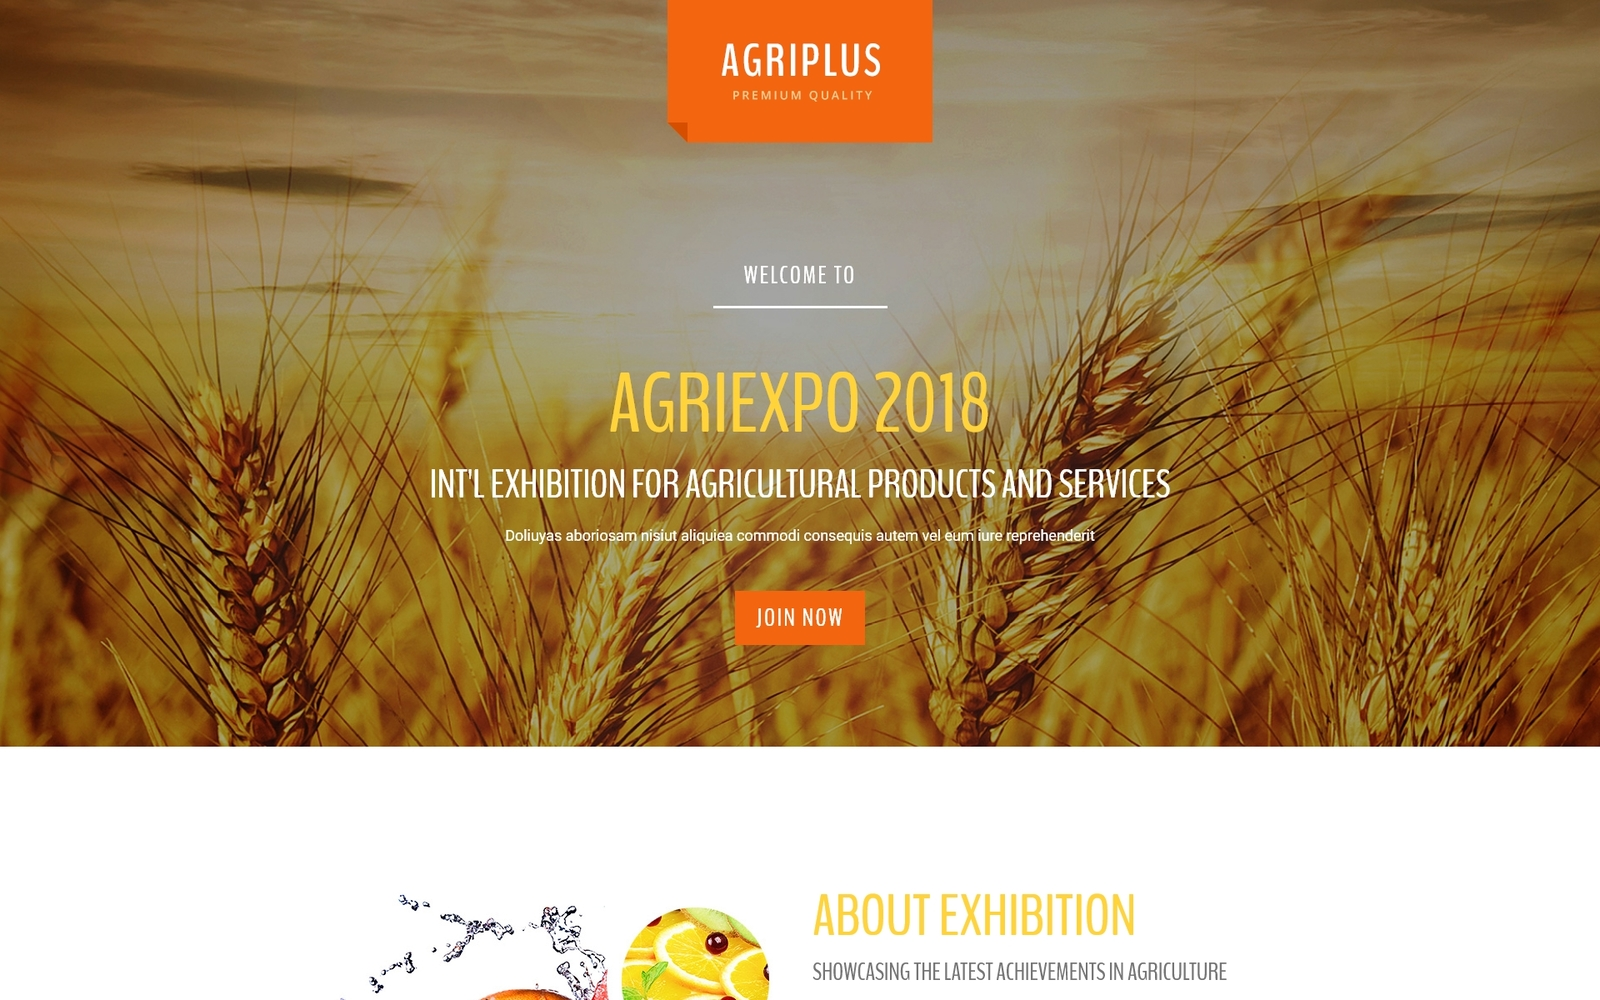 """Agriplus - Impressive Agriculture Exhibition with Built-In Novi Builder"" - адаптивний Шаблон цільової сторінки №67554"